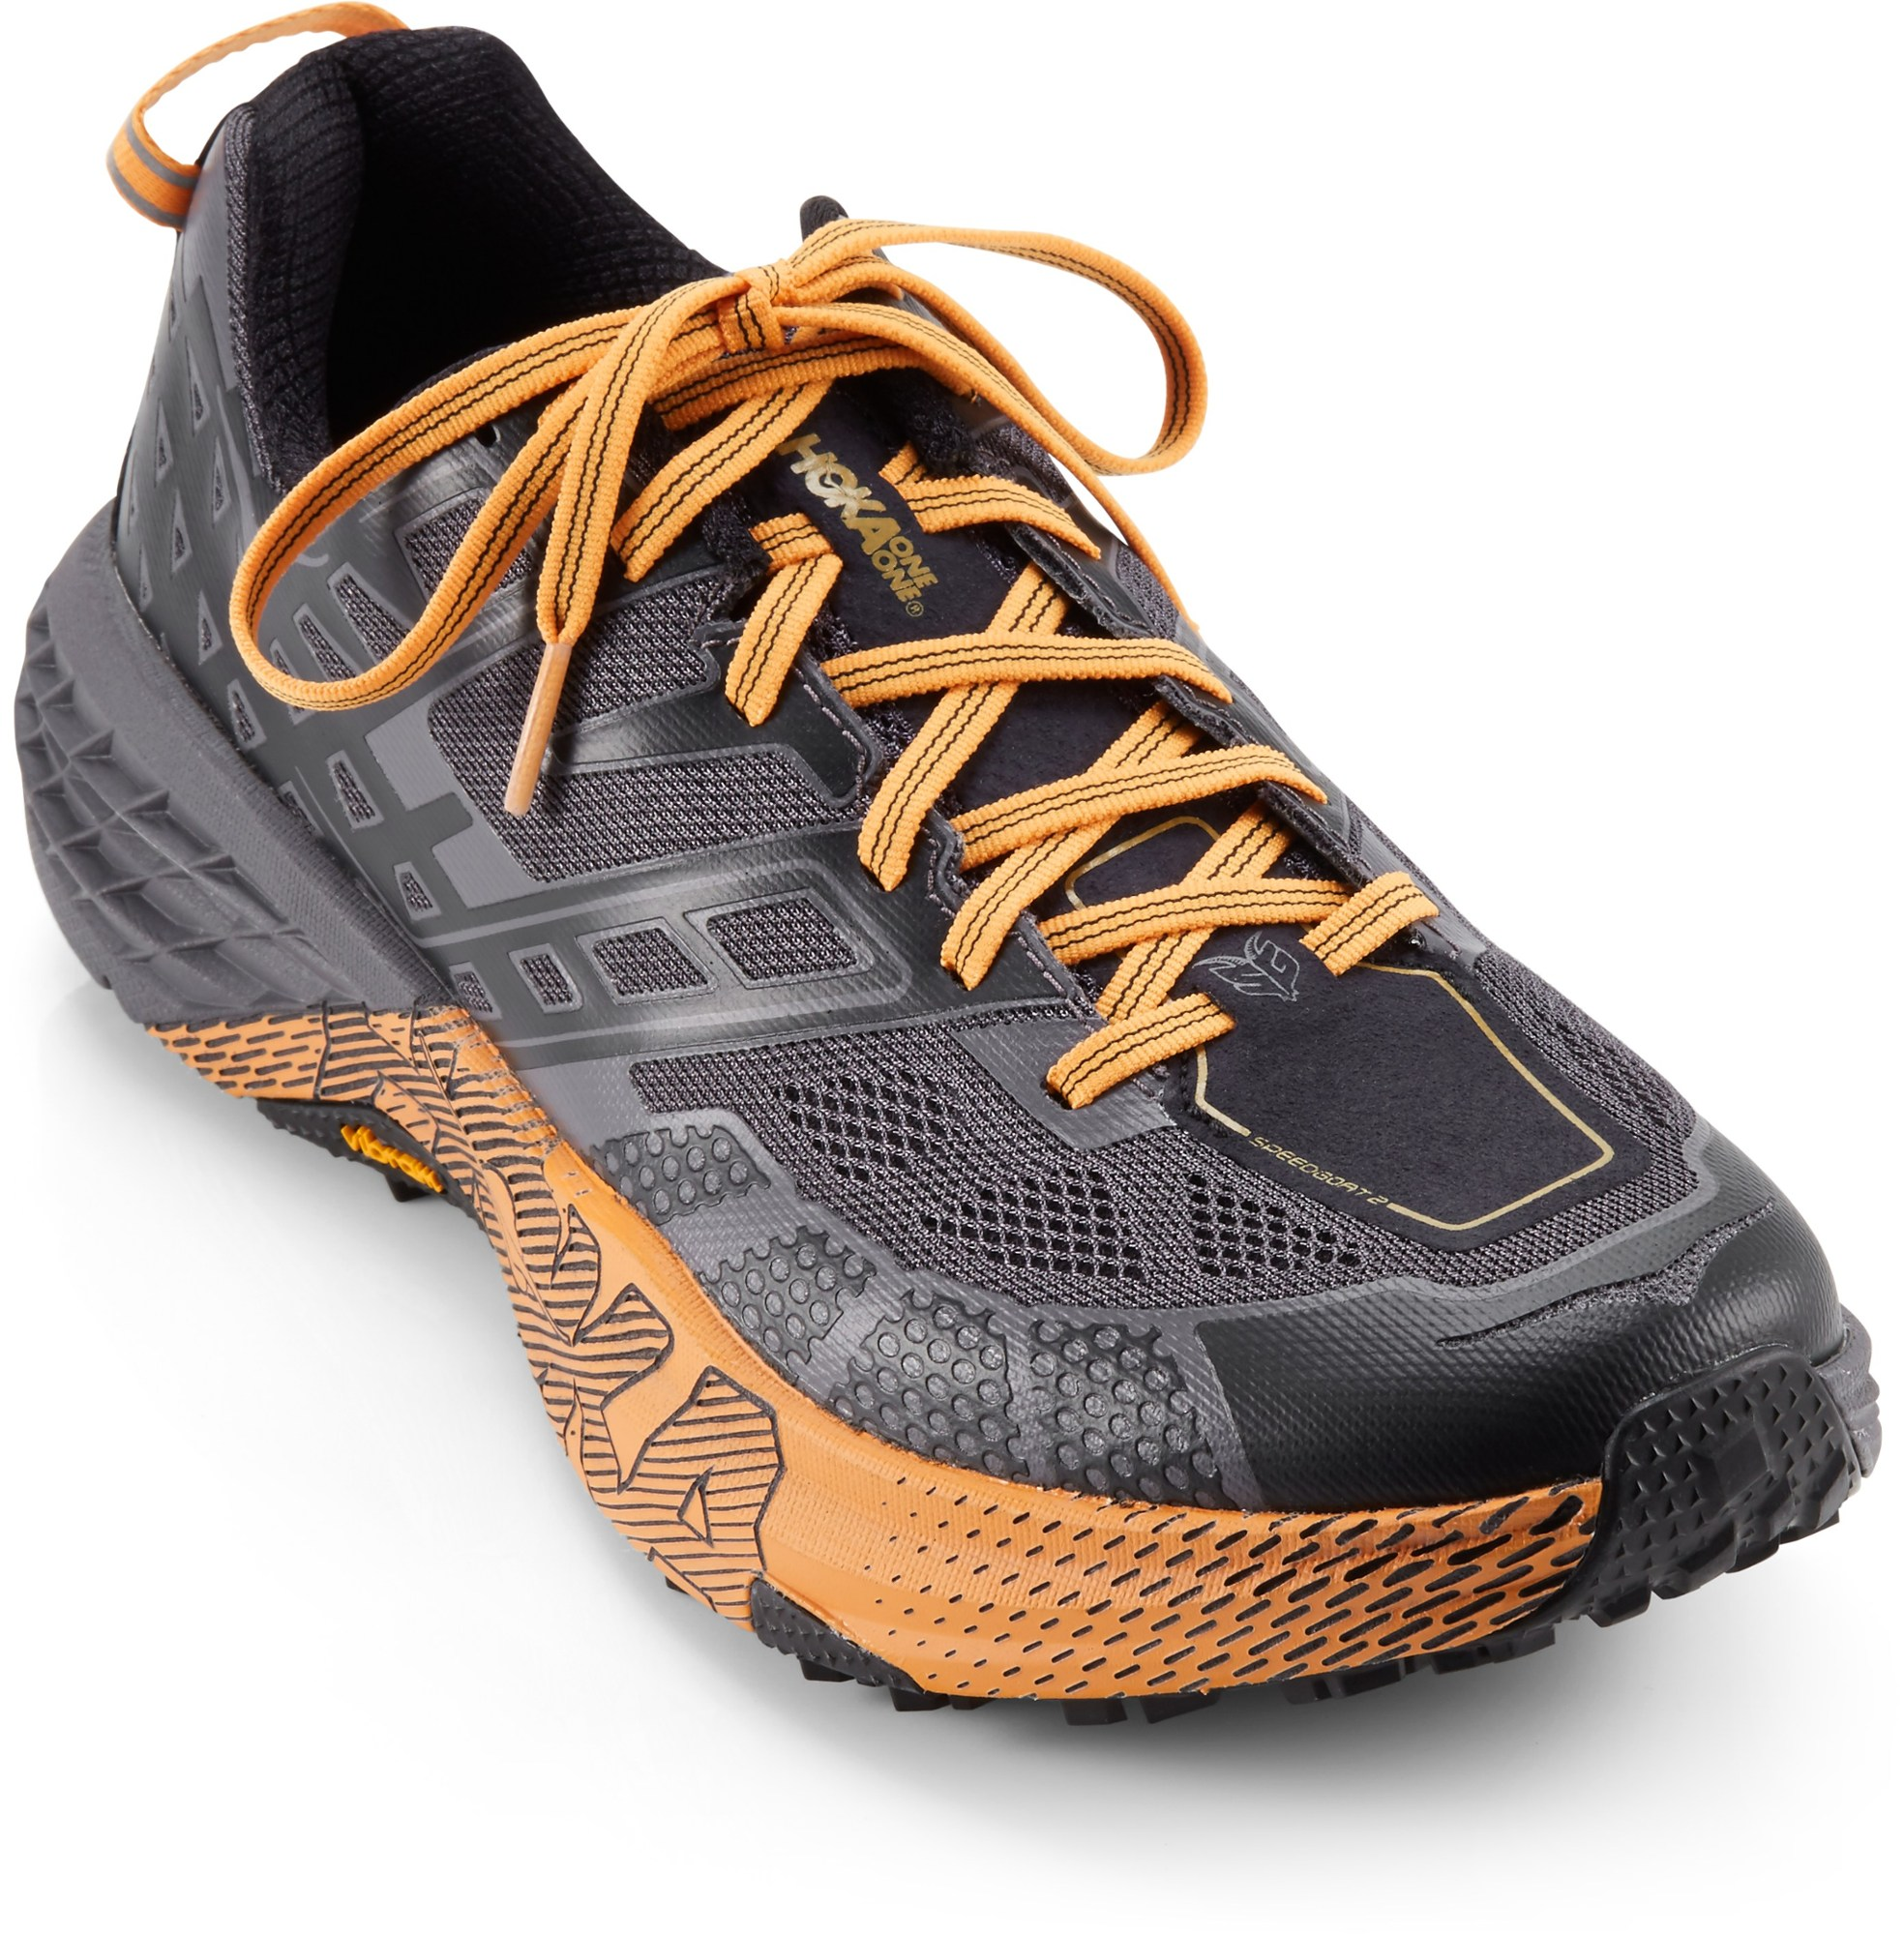 HOKA ONE ONE Speedgoat 2 Trail-Running Shoes - Men's